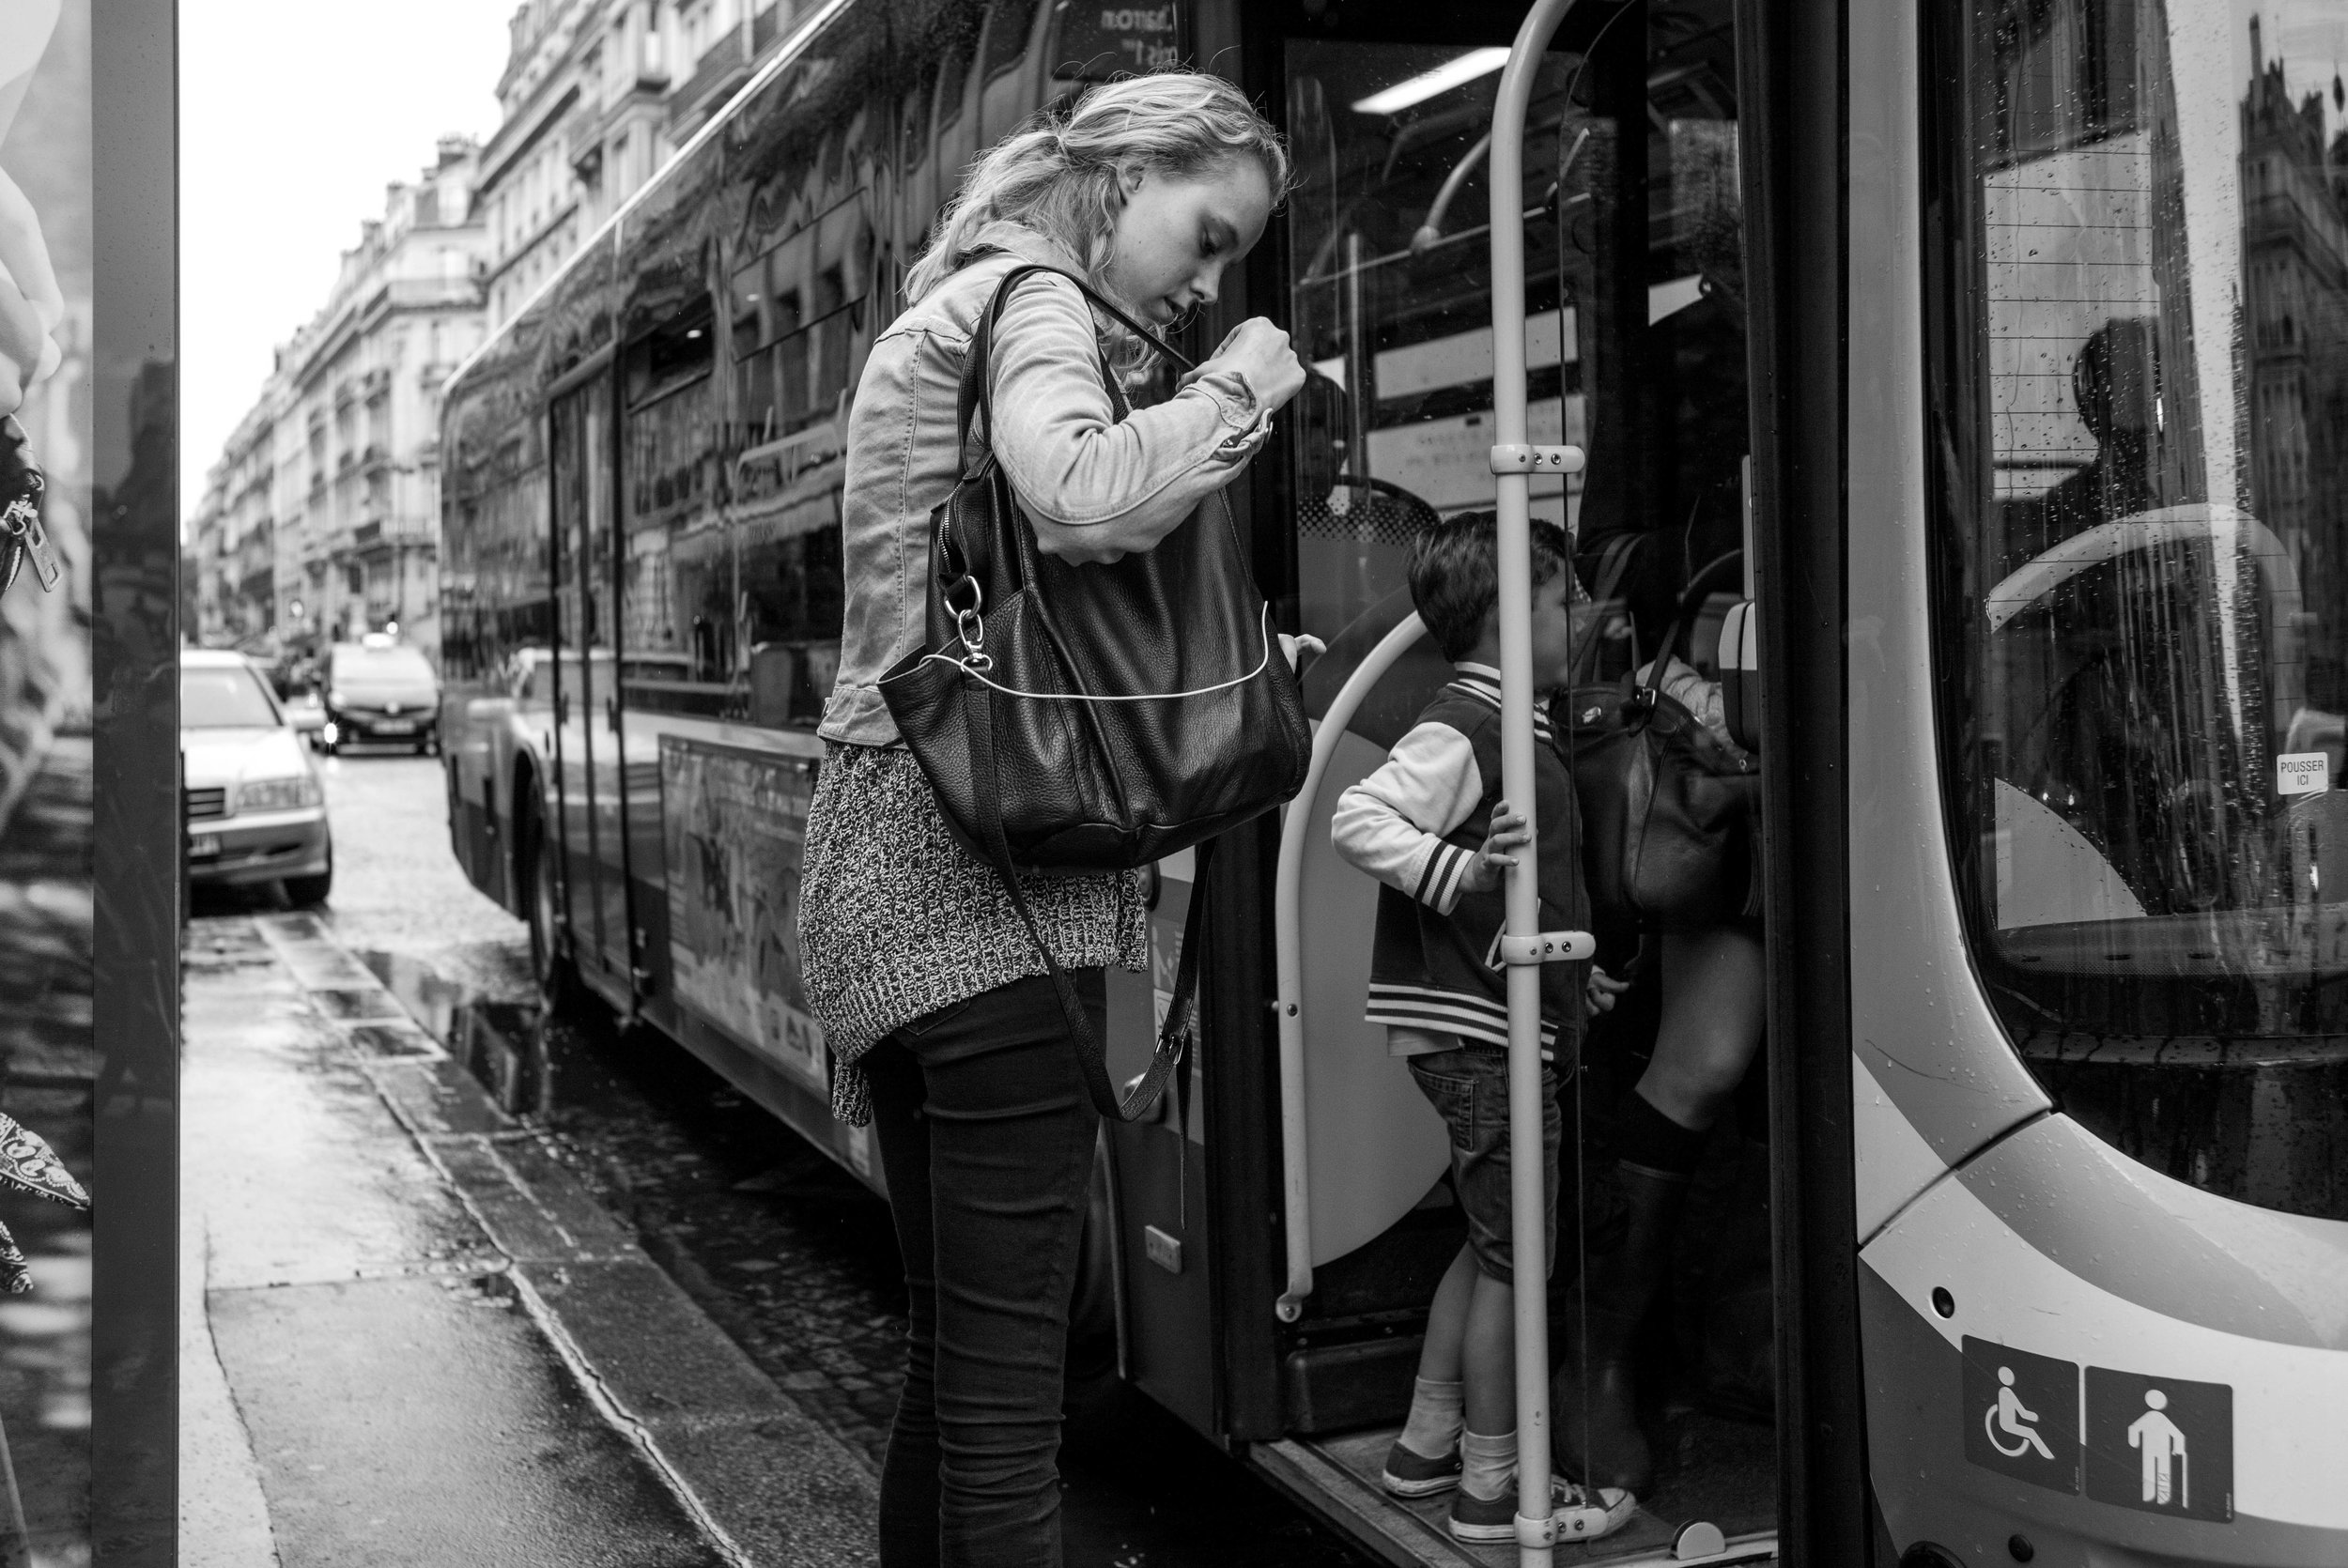 A woman getting onto a bus. Not exactly interesting. But since I was just standing around the bus stop, it was an easy photo opportunity. So I figure why not. Not exactly much thought was put into it.